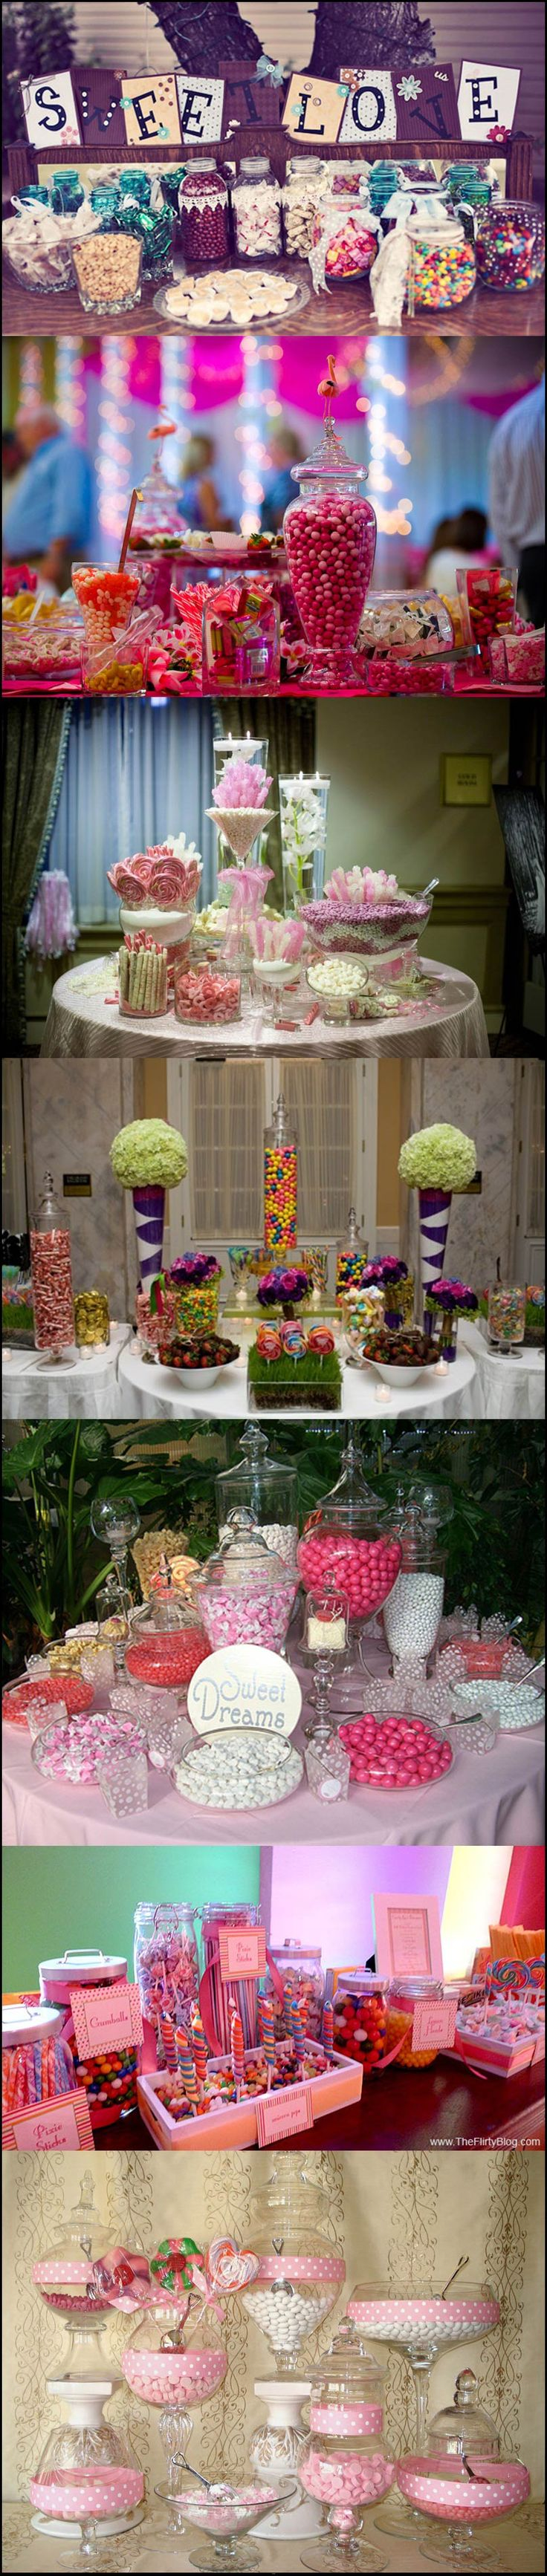 Candy buffets are such a fun addition to any reception! Just make sure it's elegant an within your theme colors . Have a variety of candy to make your guests happy! You can even make that your favor I save money, just give everyone a cute little candy bag!